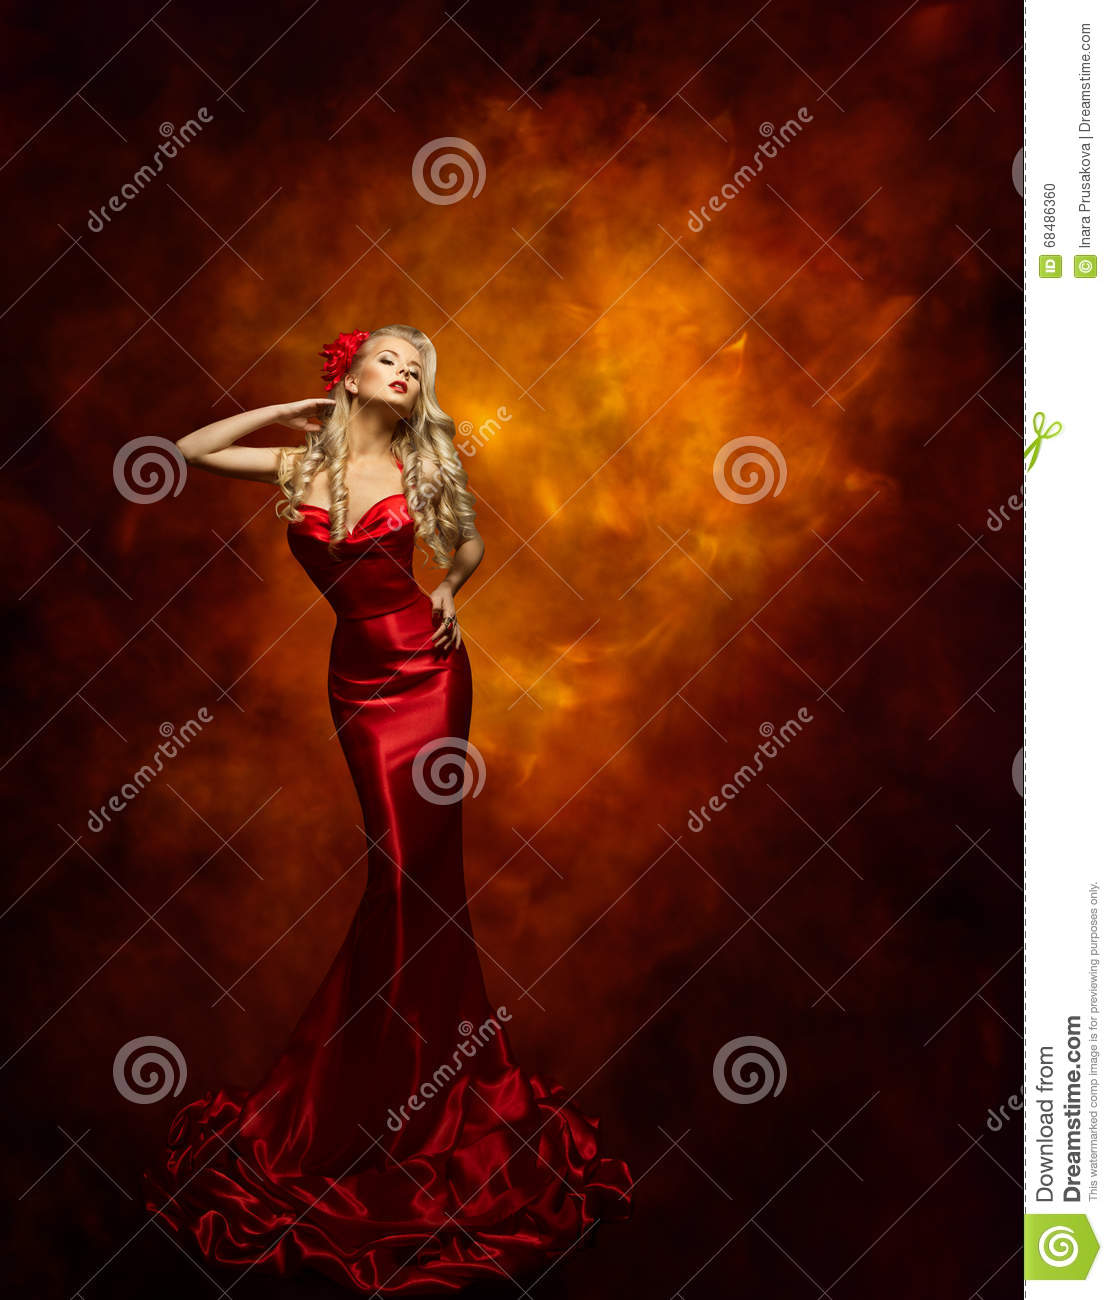 Woman Fashion Model Red Dress, Beauty Girl Posing, Glamour Gown